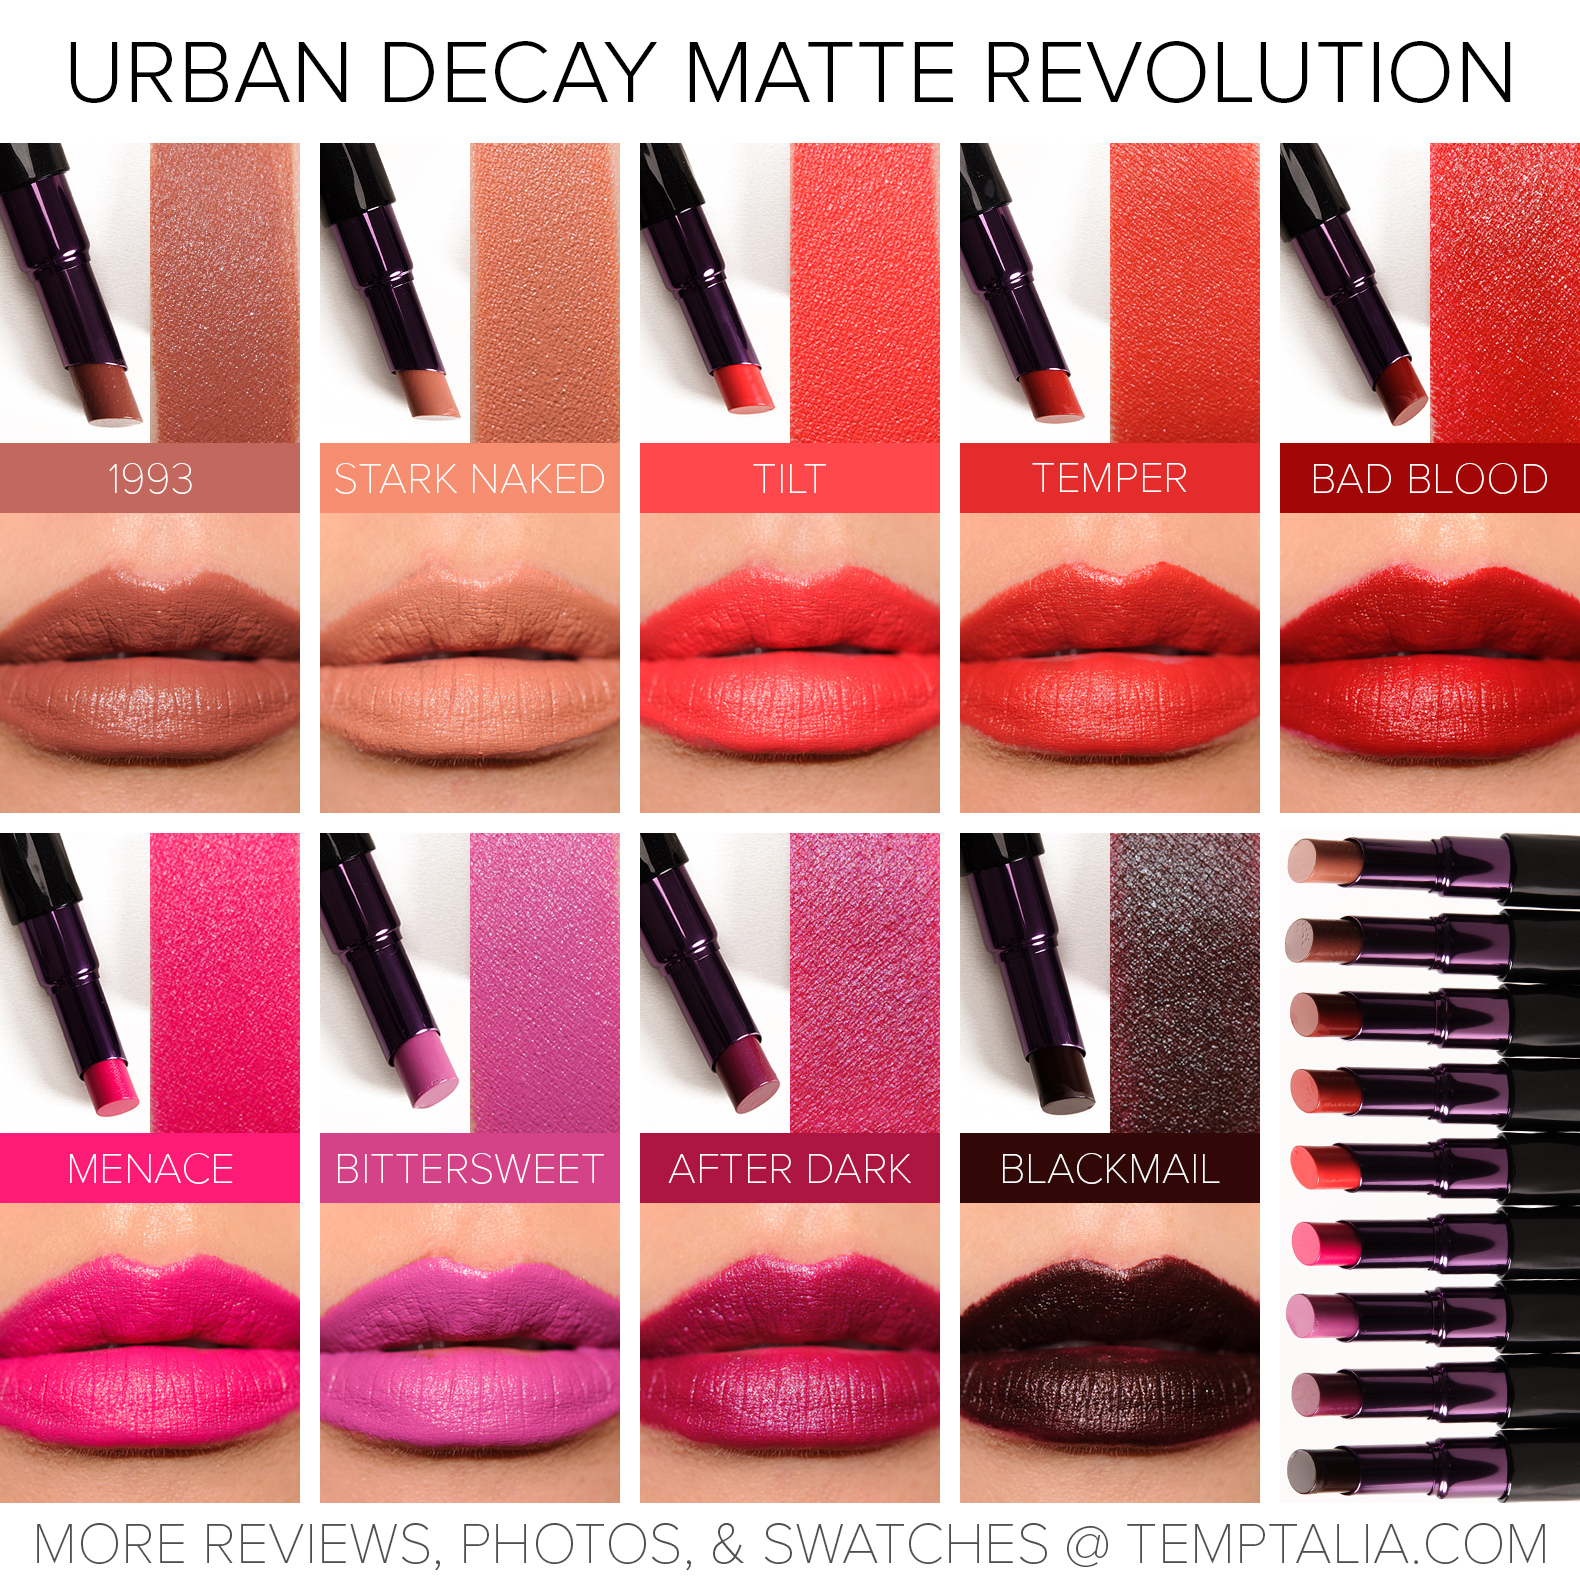 Urban Decay Revolution Lipsticks Indian Darker Skin Makeup ...